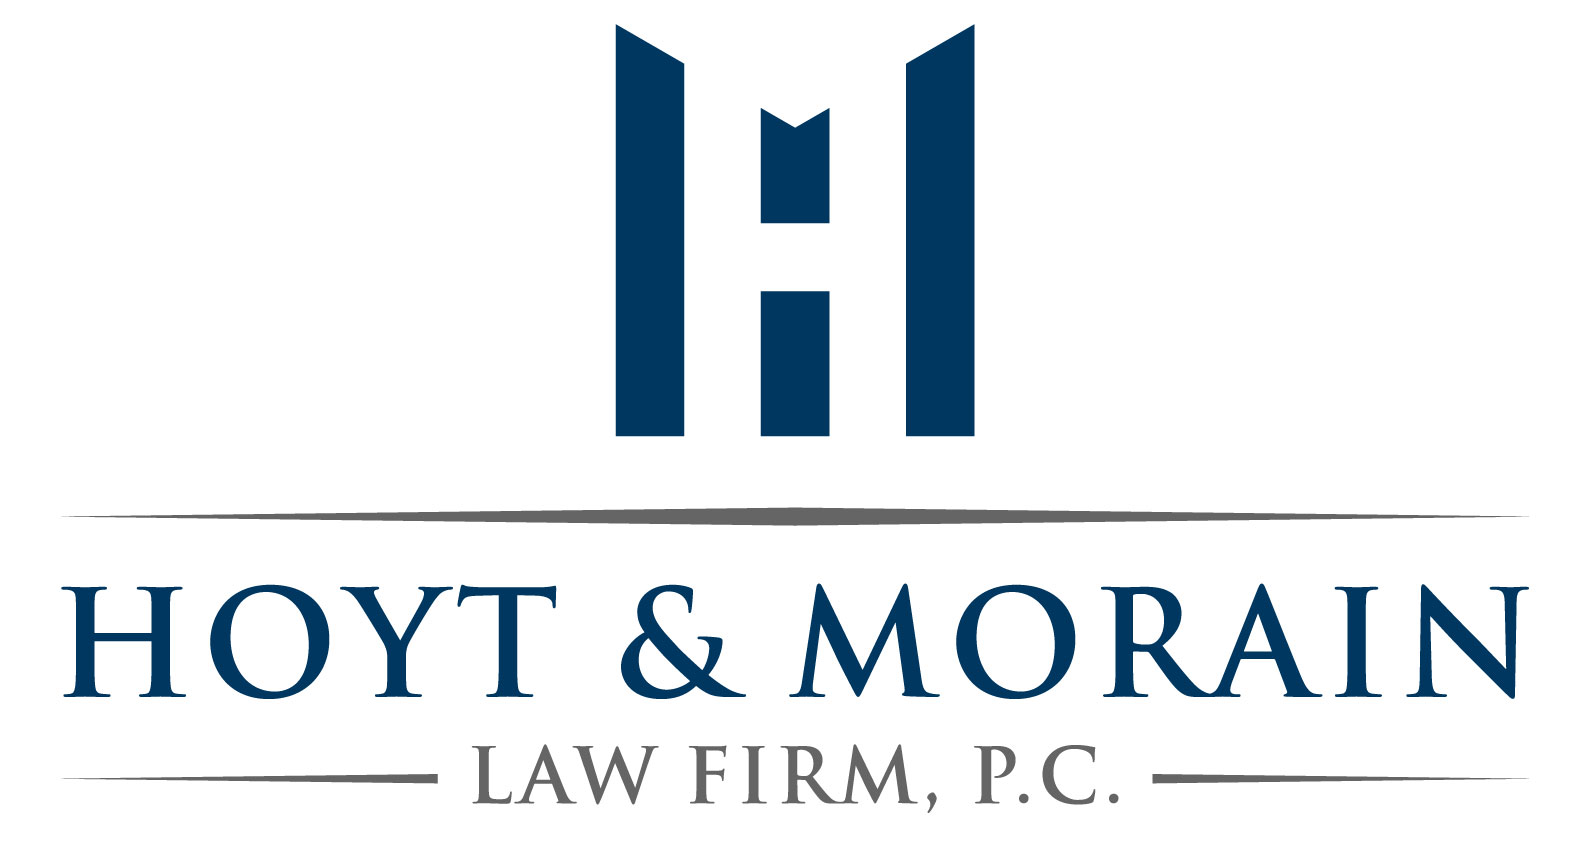 Hoyt & Morain Law Firm, P.C.